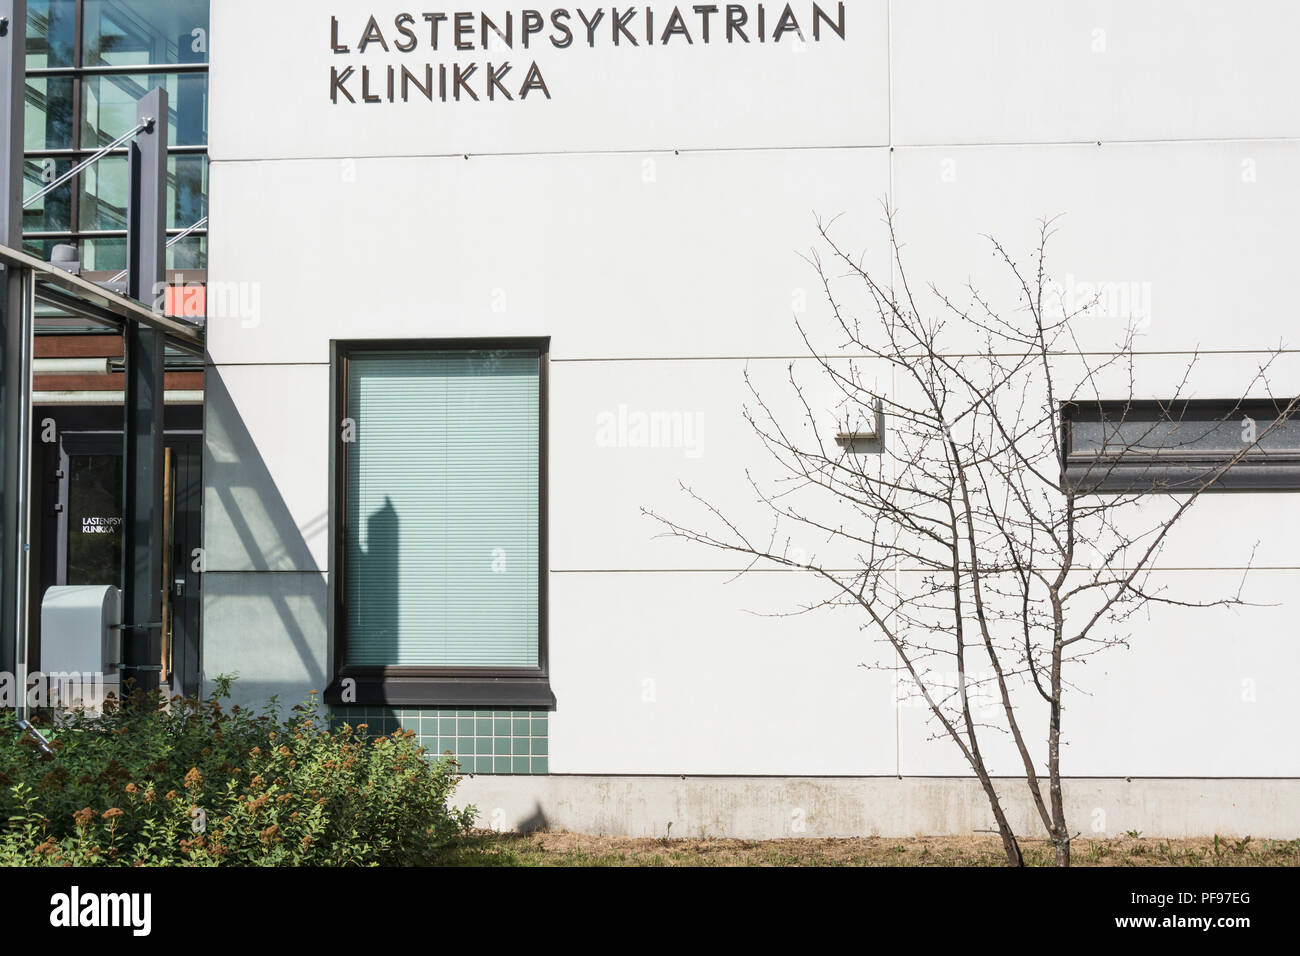 Universitätsklinik Tampere in Tampere Finnland Stockbild